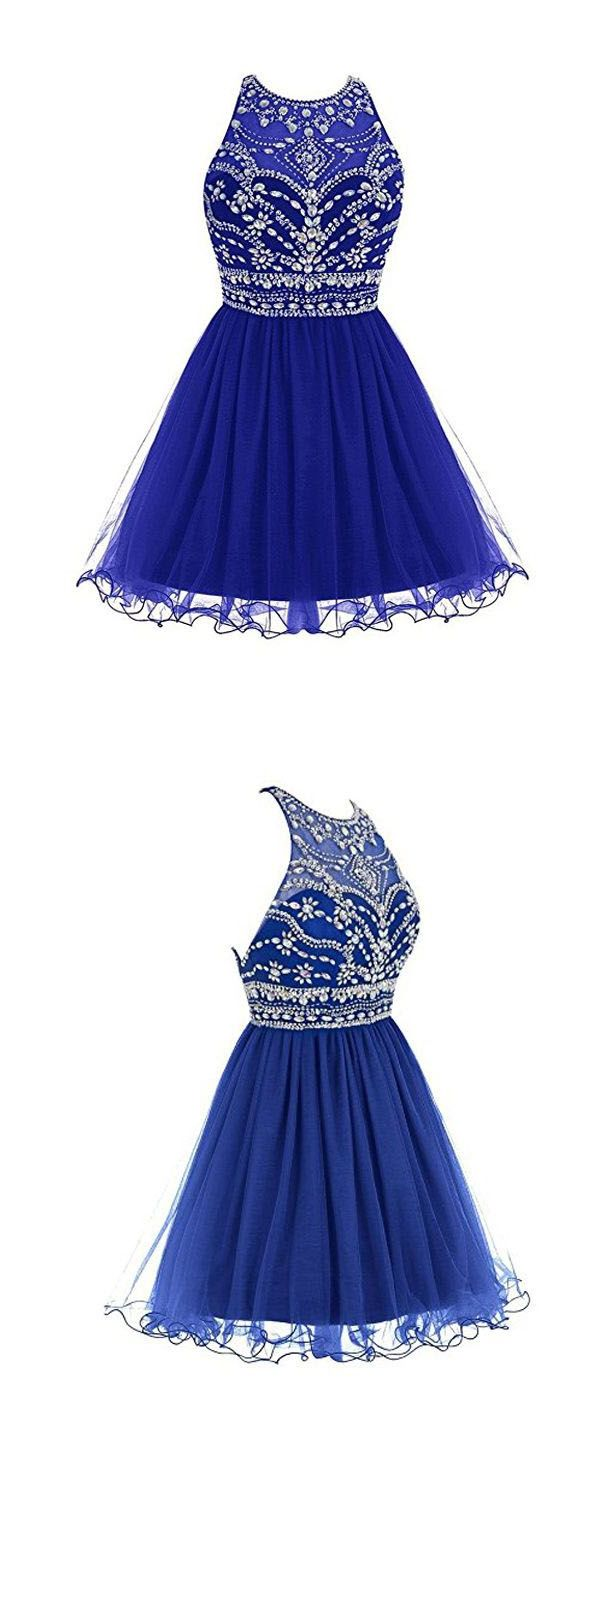 Outlet engrossing short prom dresses royal bule tulle homecoming